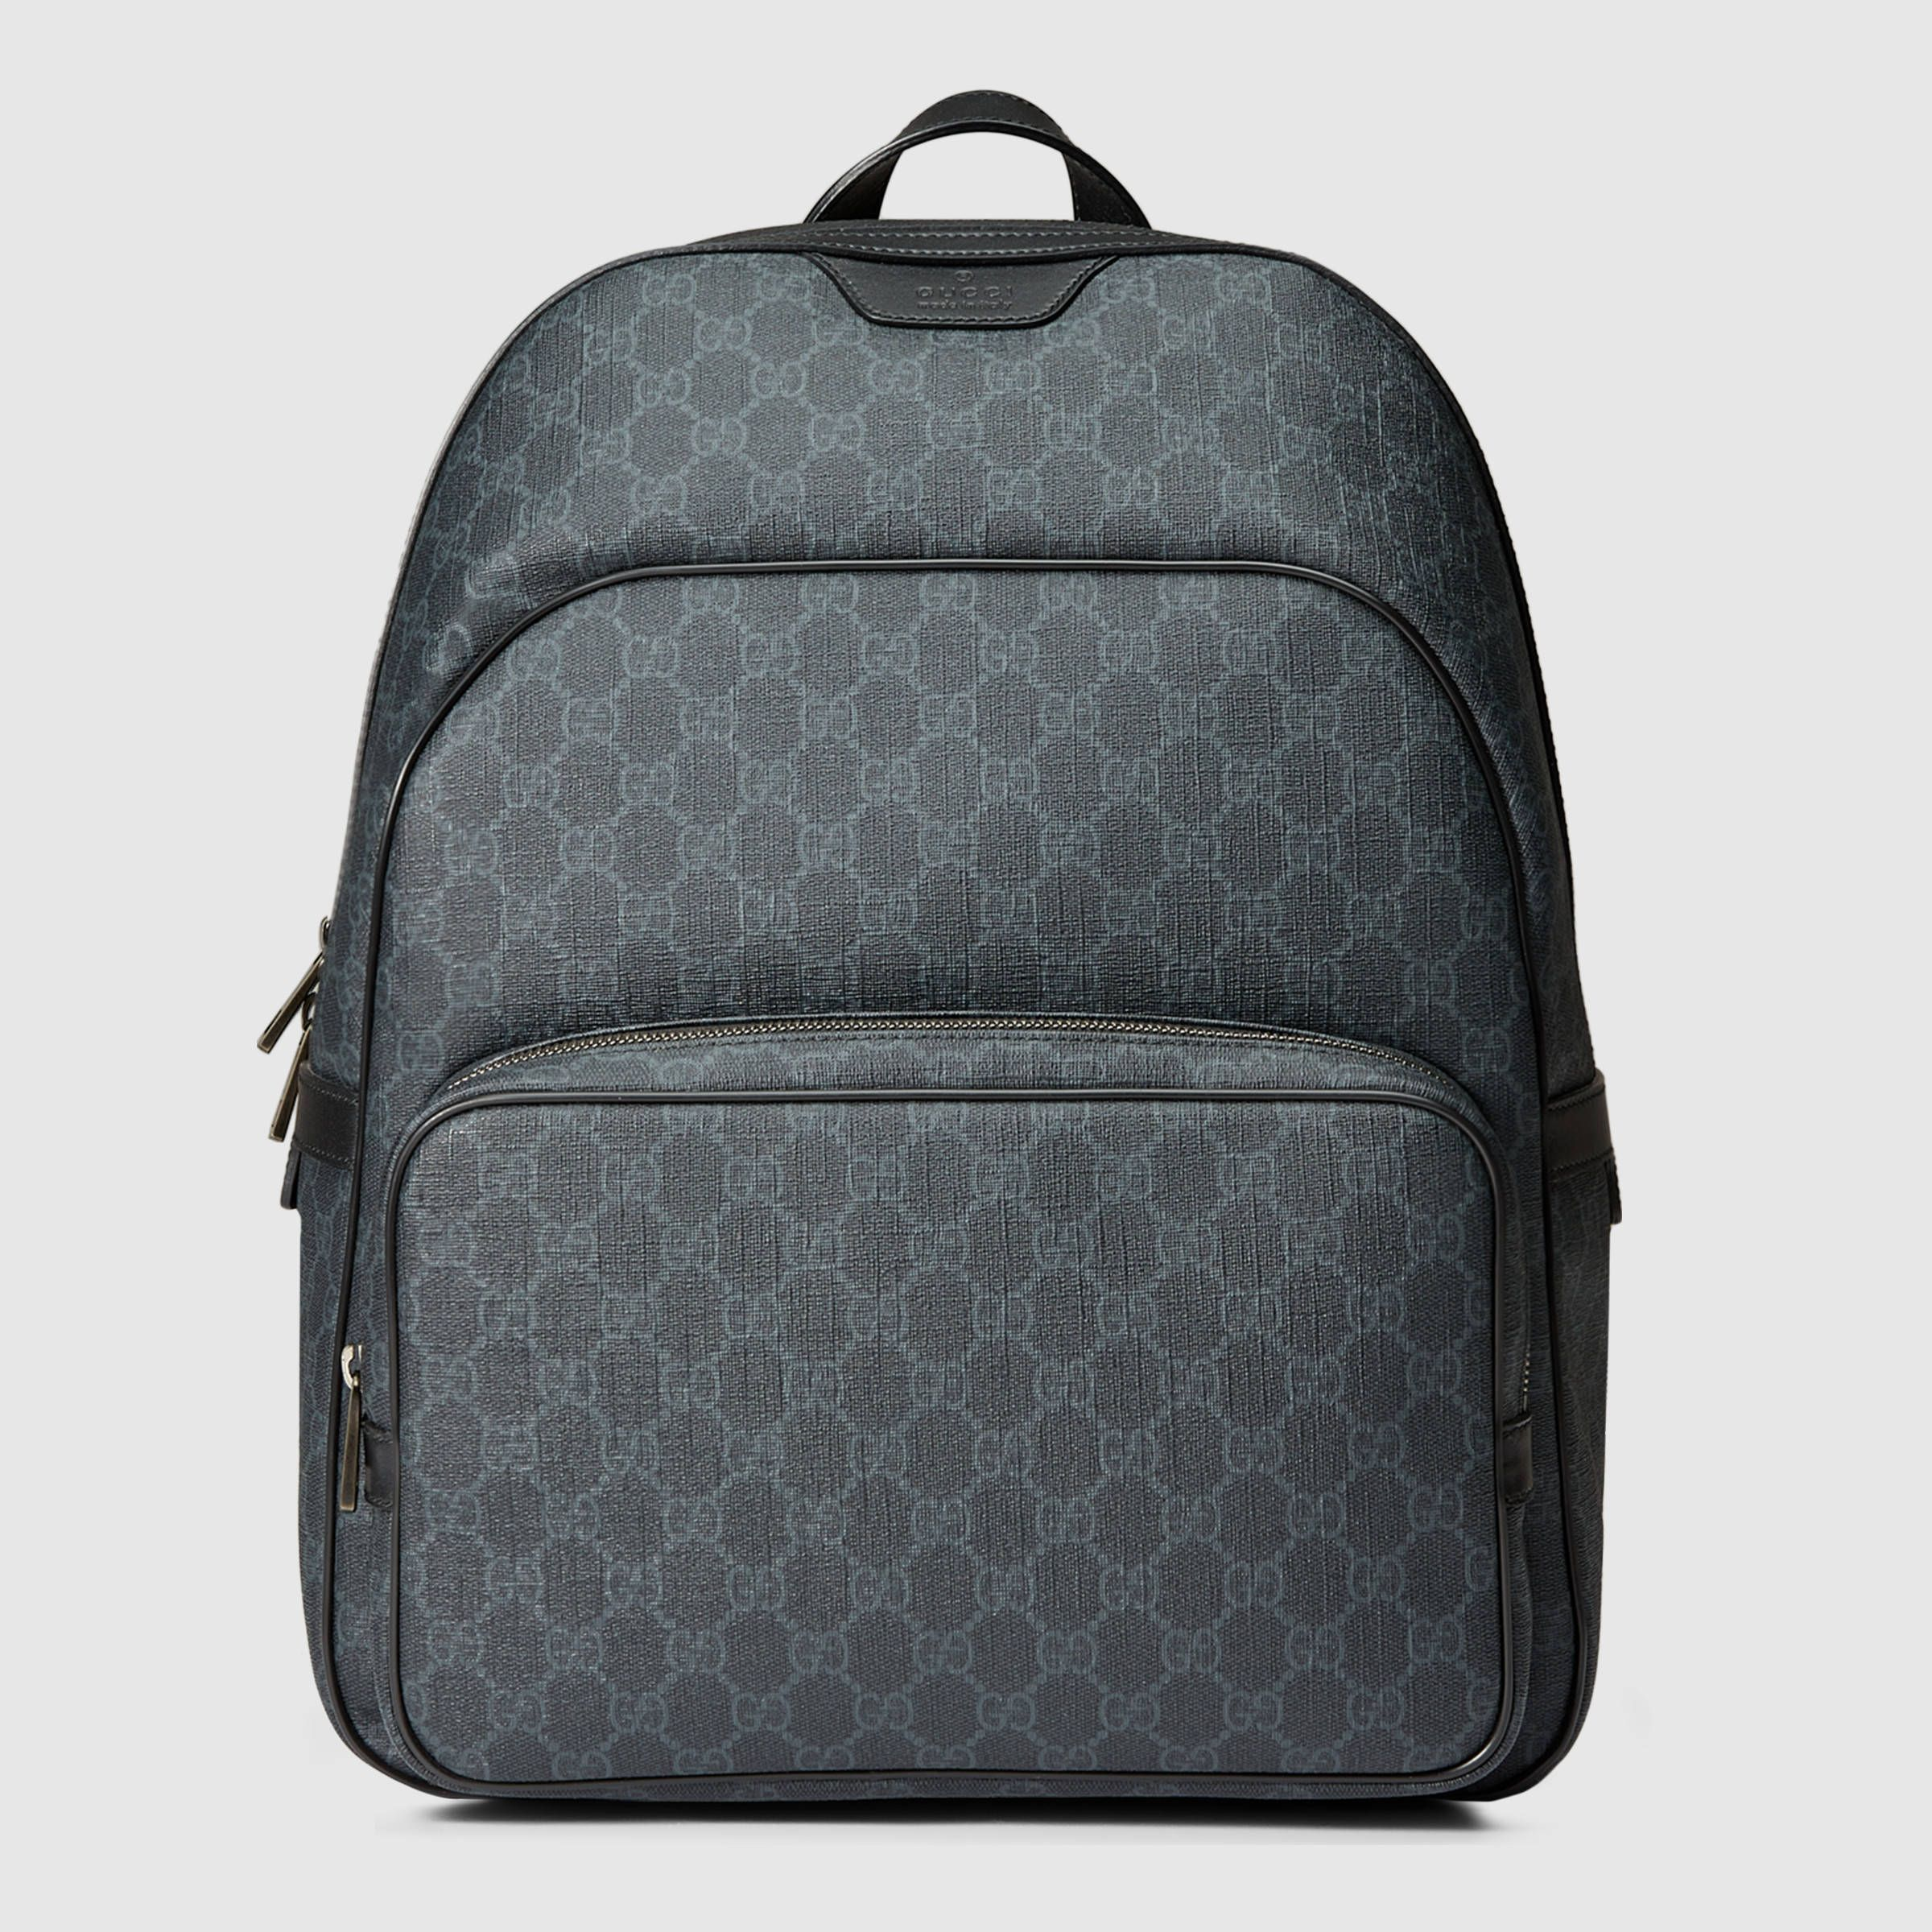 097f636ffb2ae6 Gucci GG Supreme Backpack | Men Bags | Supreme backpack, Backpacks ...